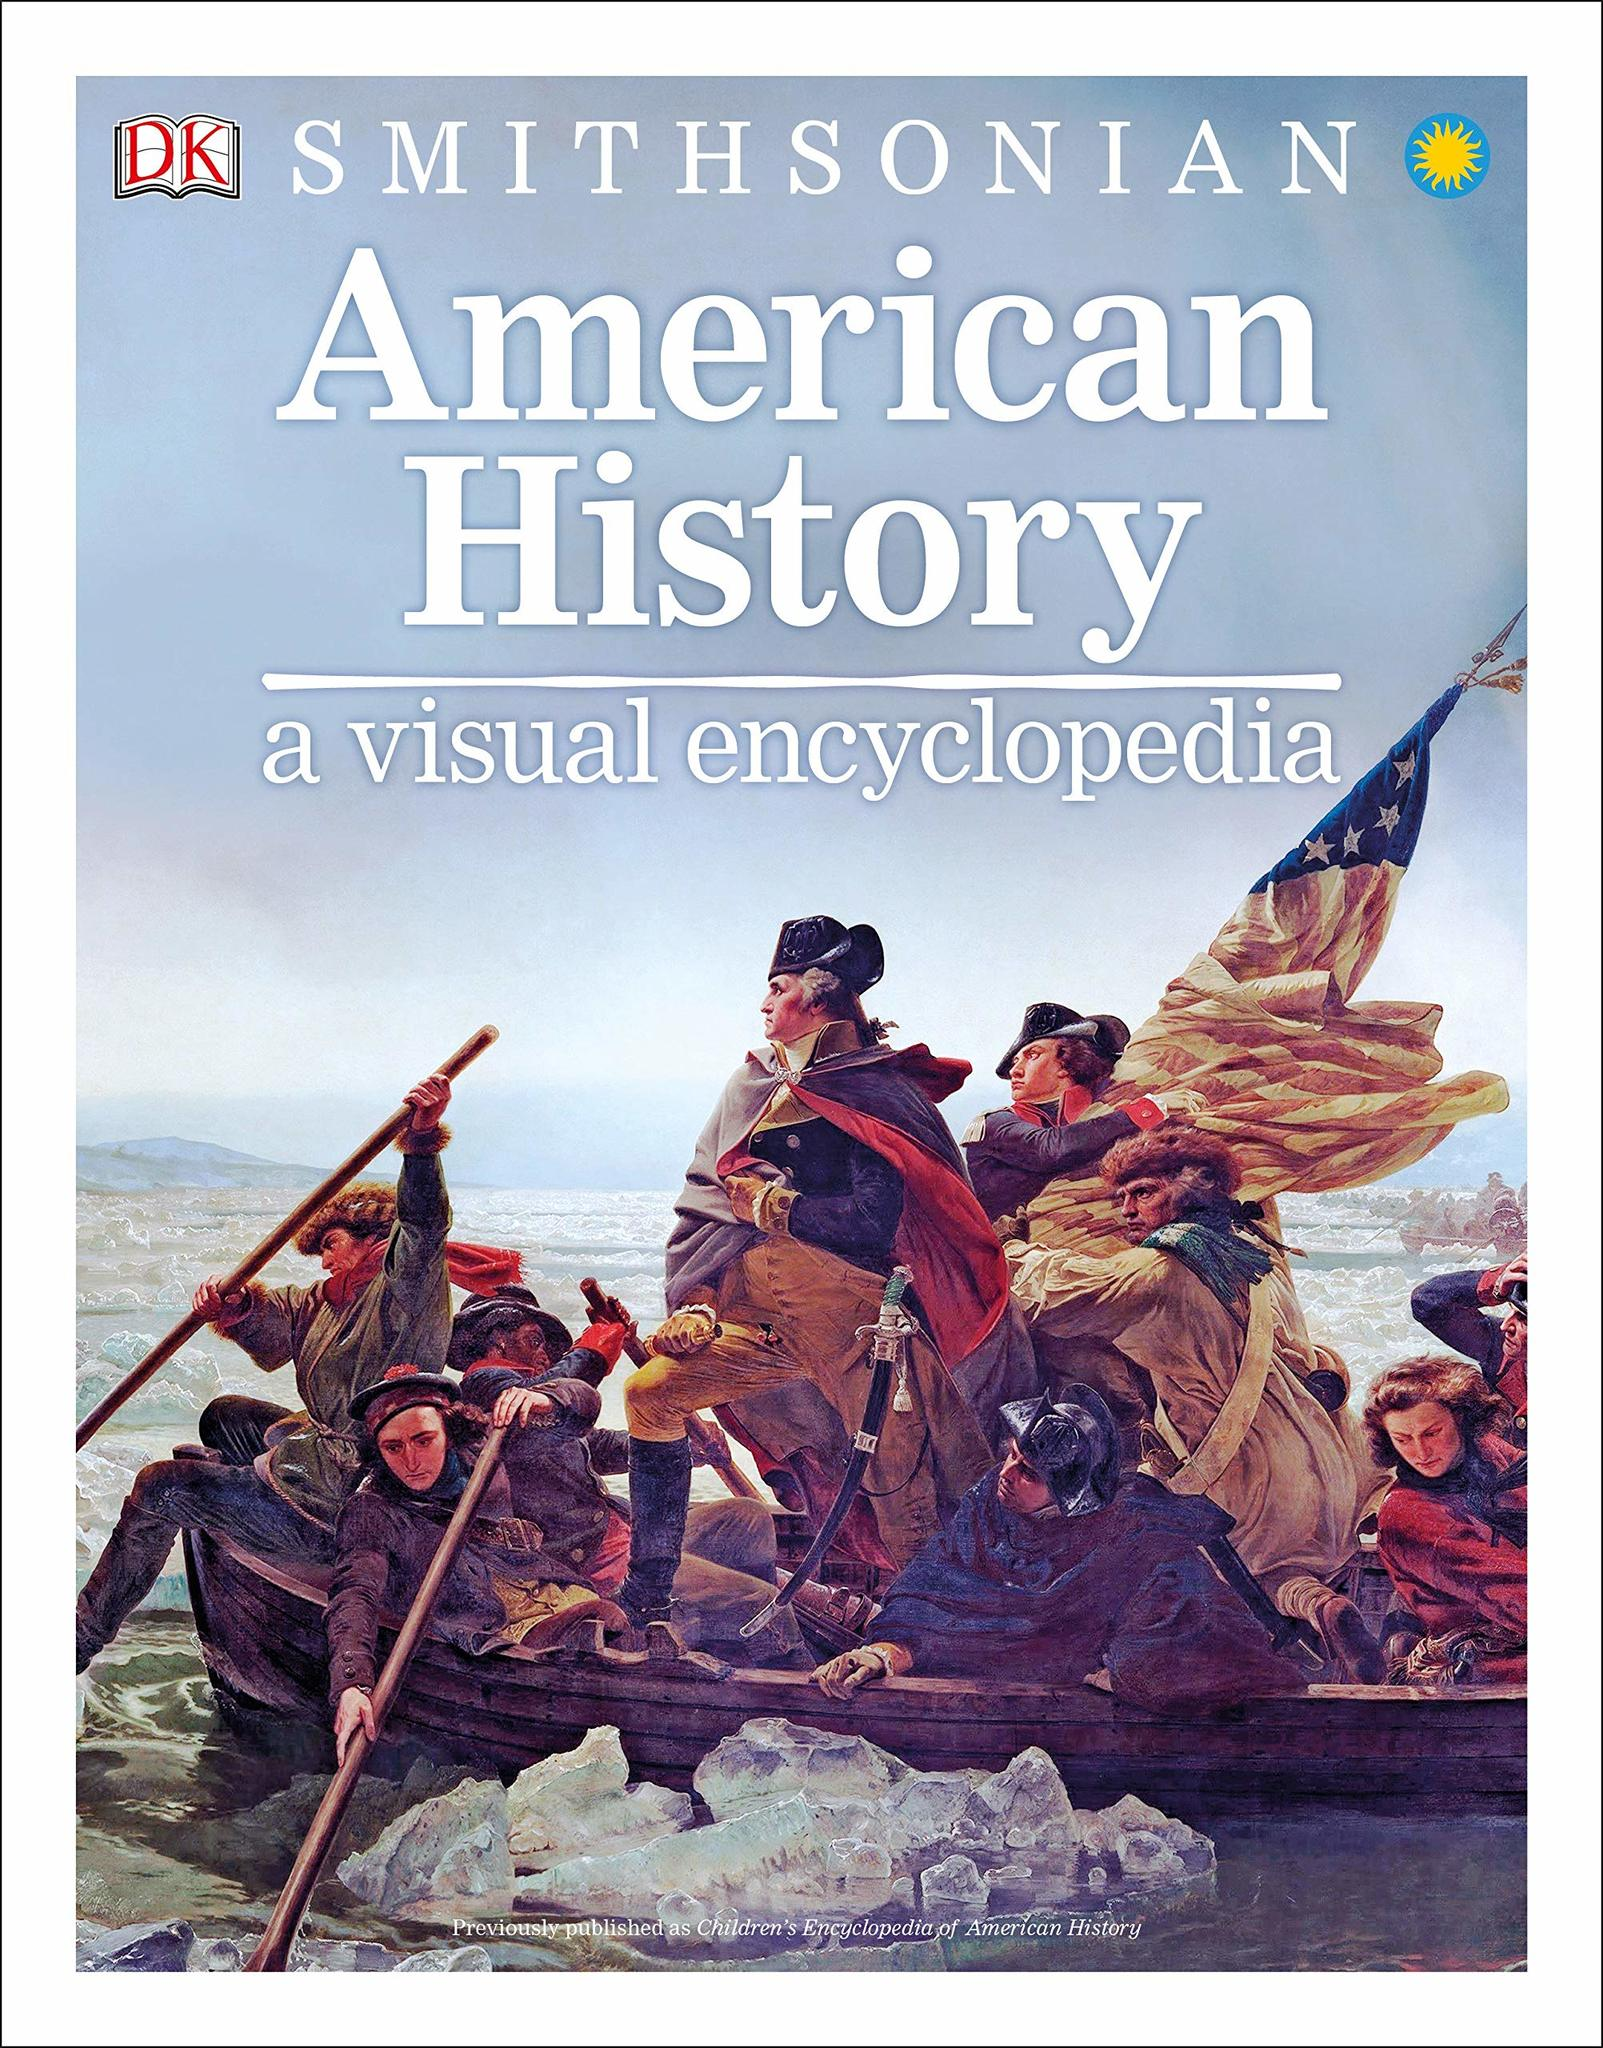 American History Encyclopedia Smithsonian